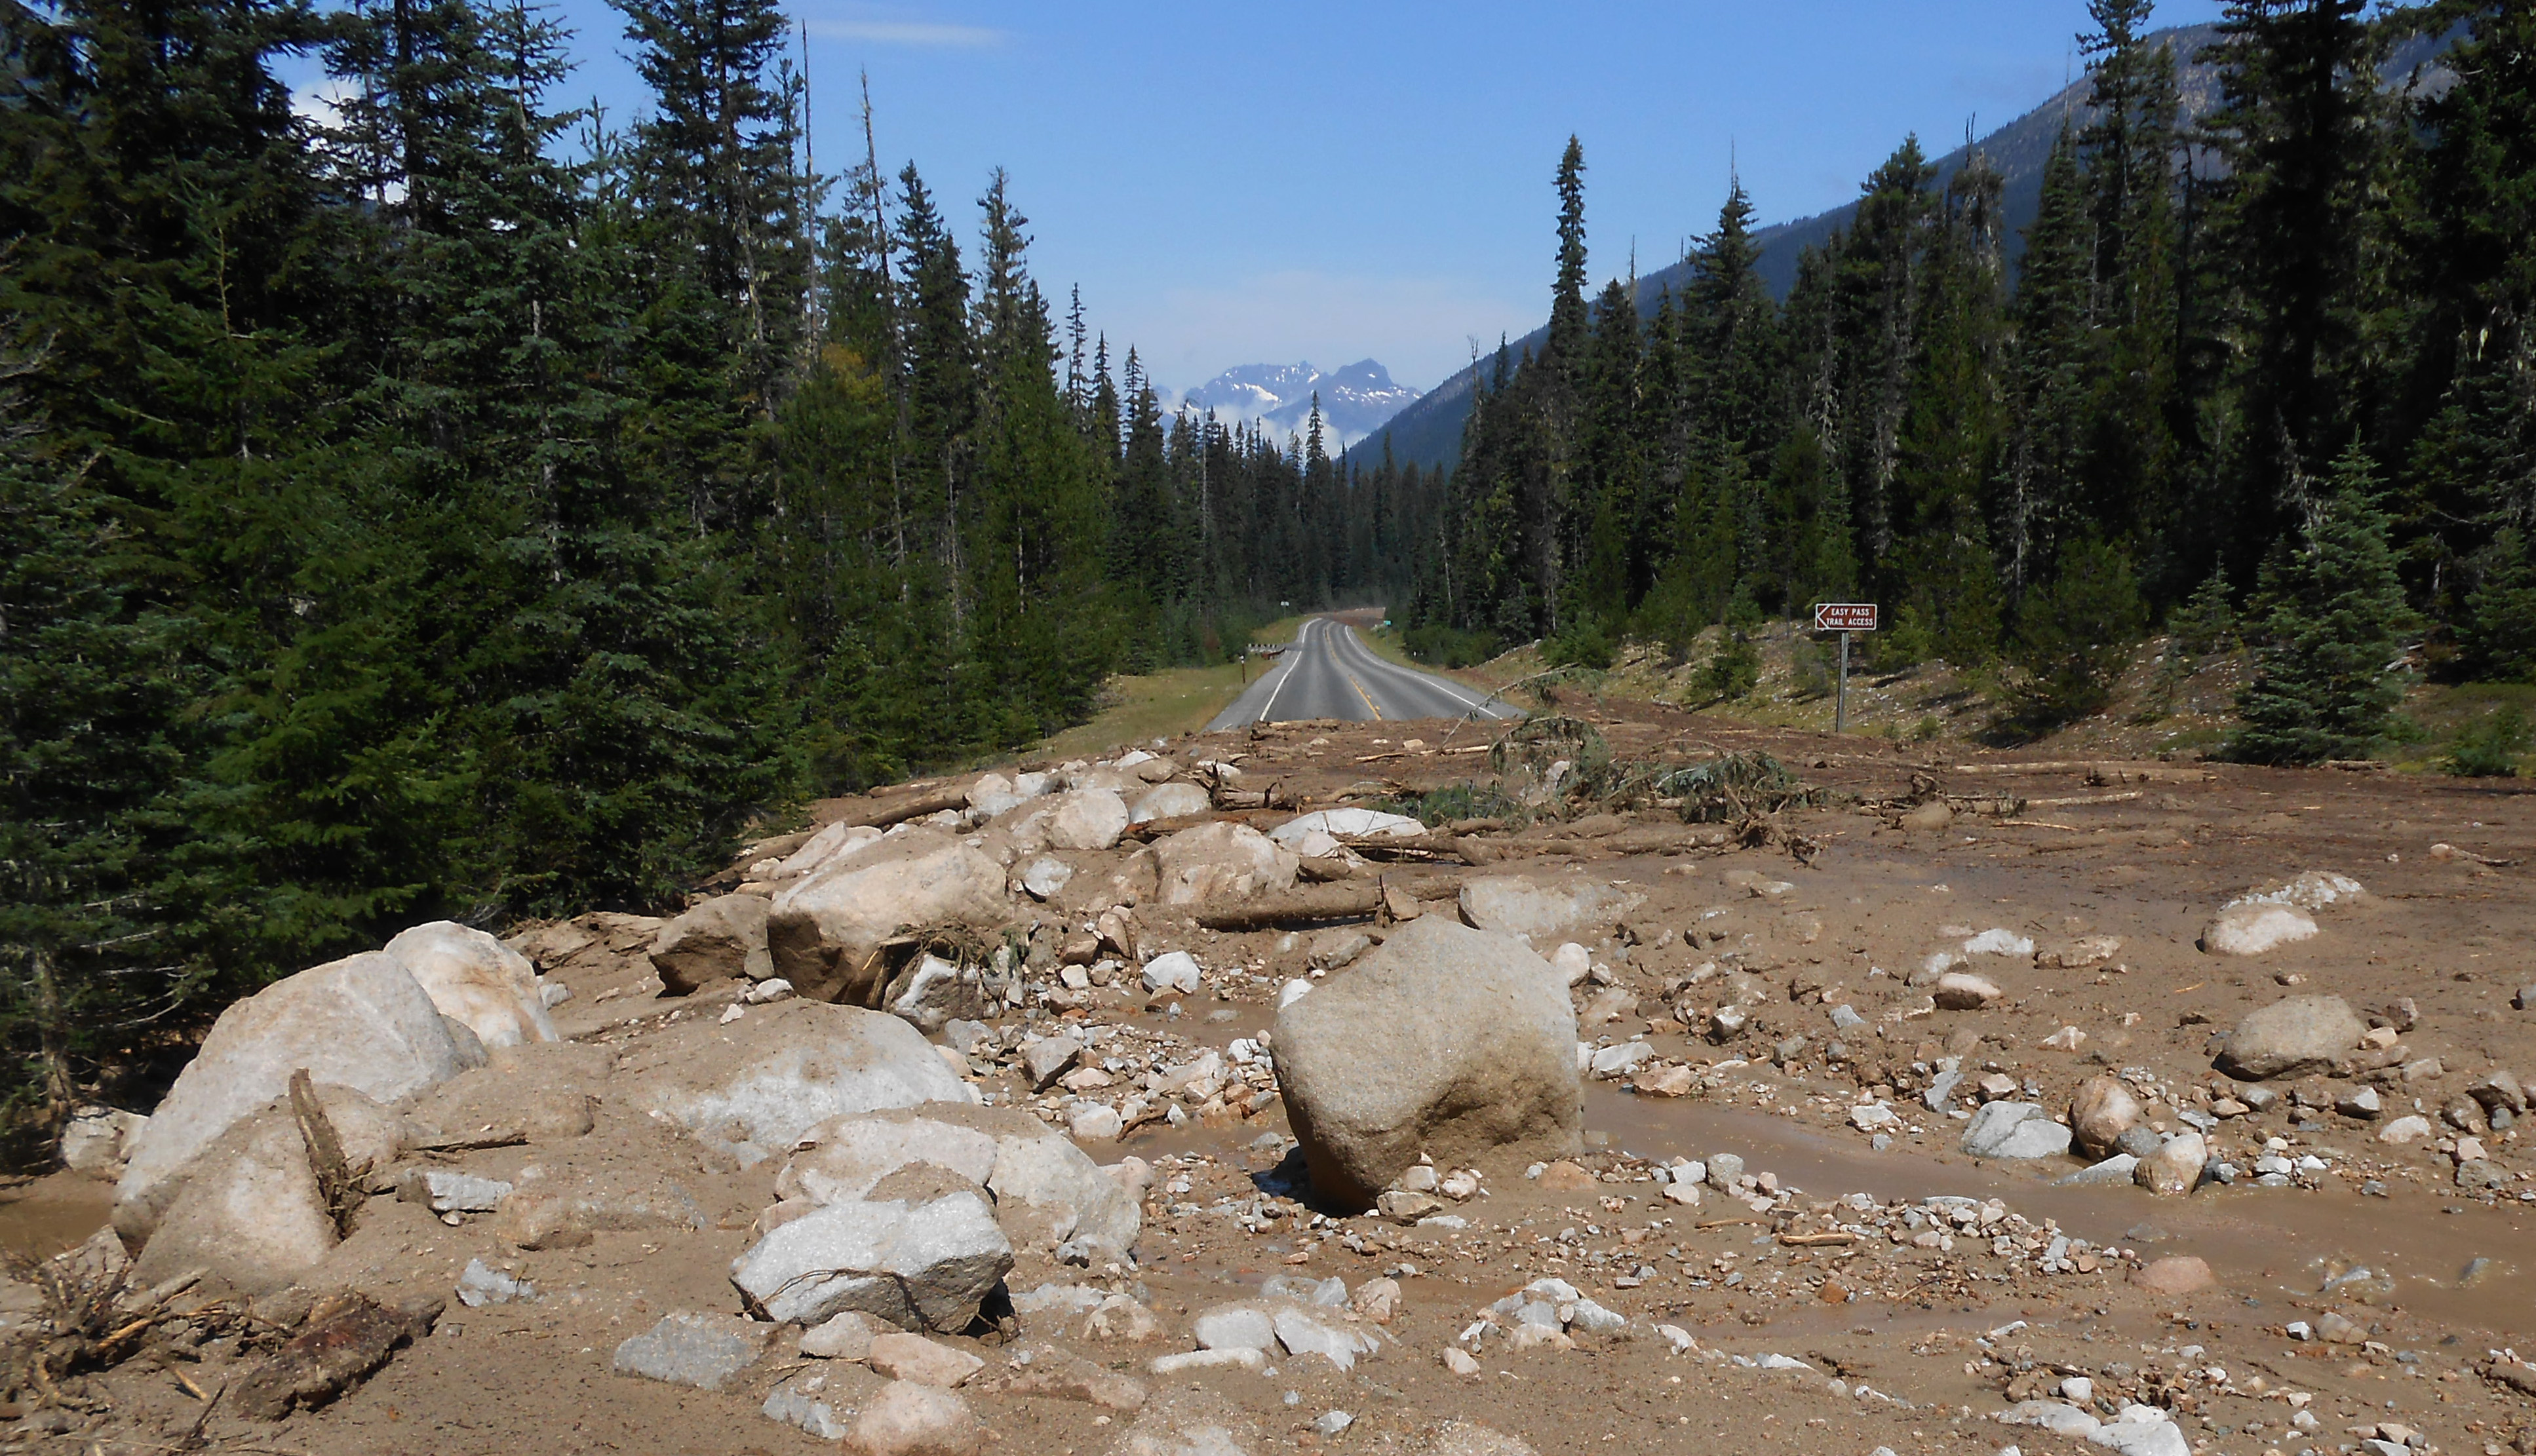 Sales down after mudslides on North Cascades Highway | The Spokesman